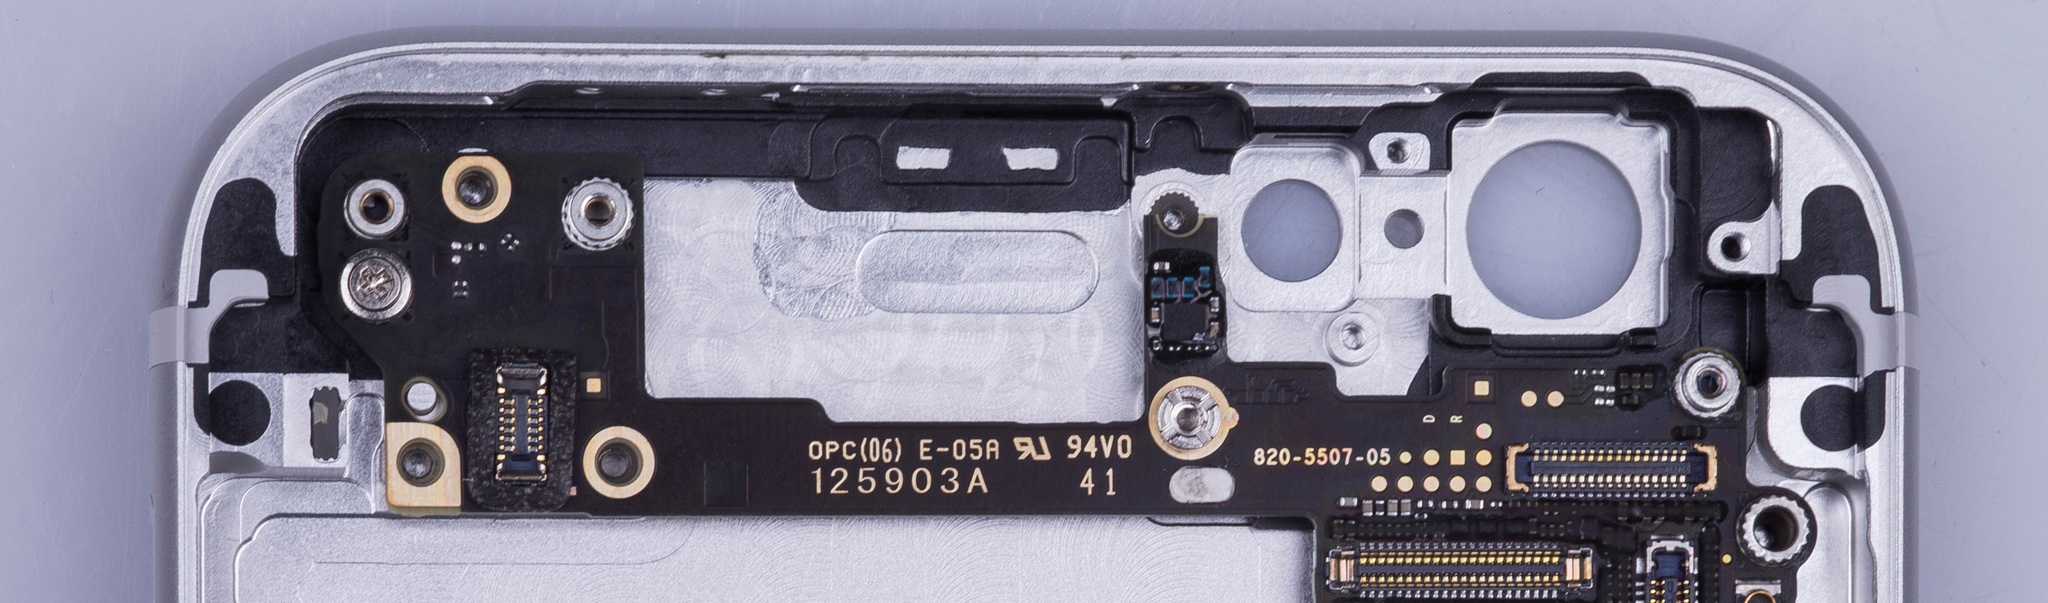 iPhone 6s Qualcomm MDM9625M leak 002